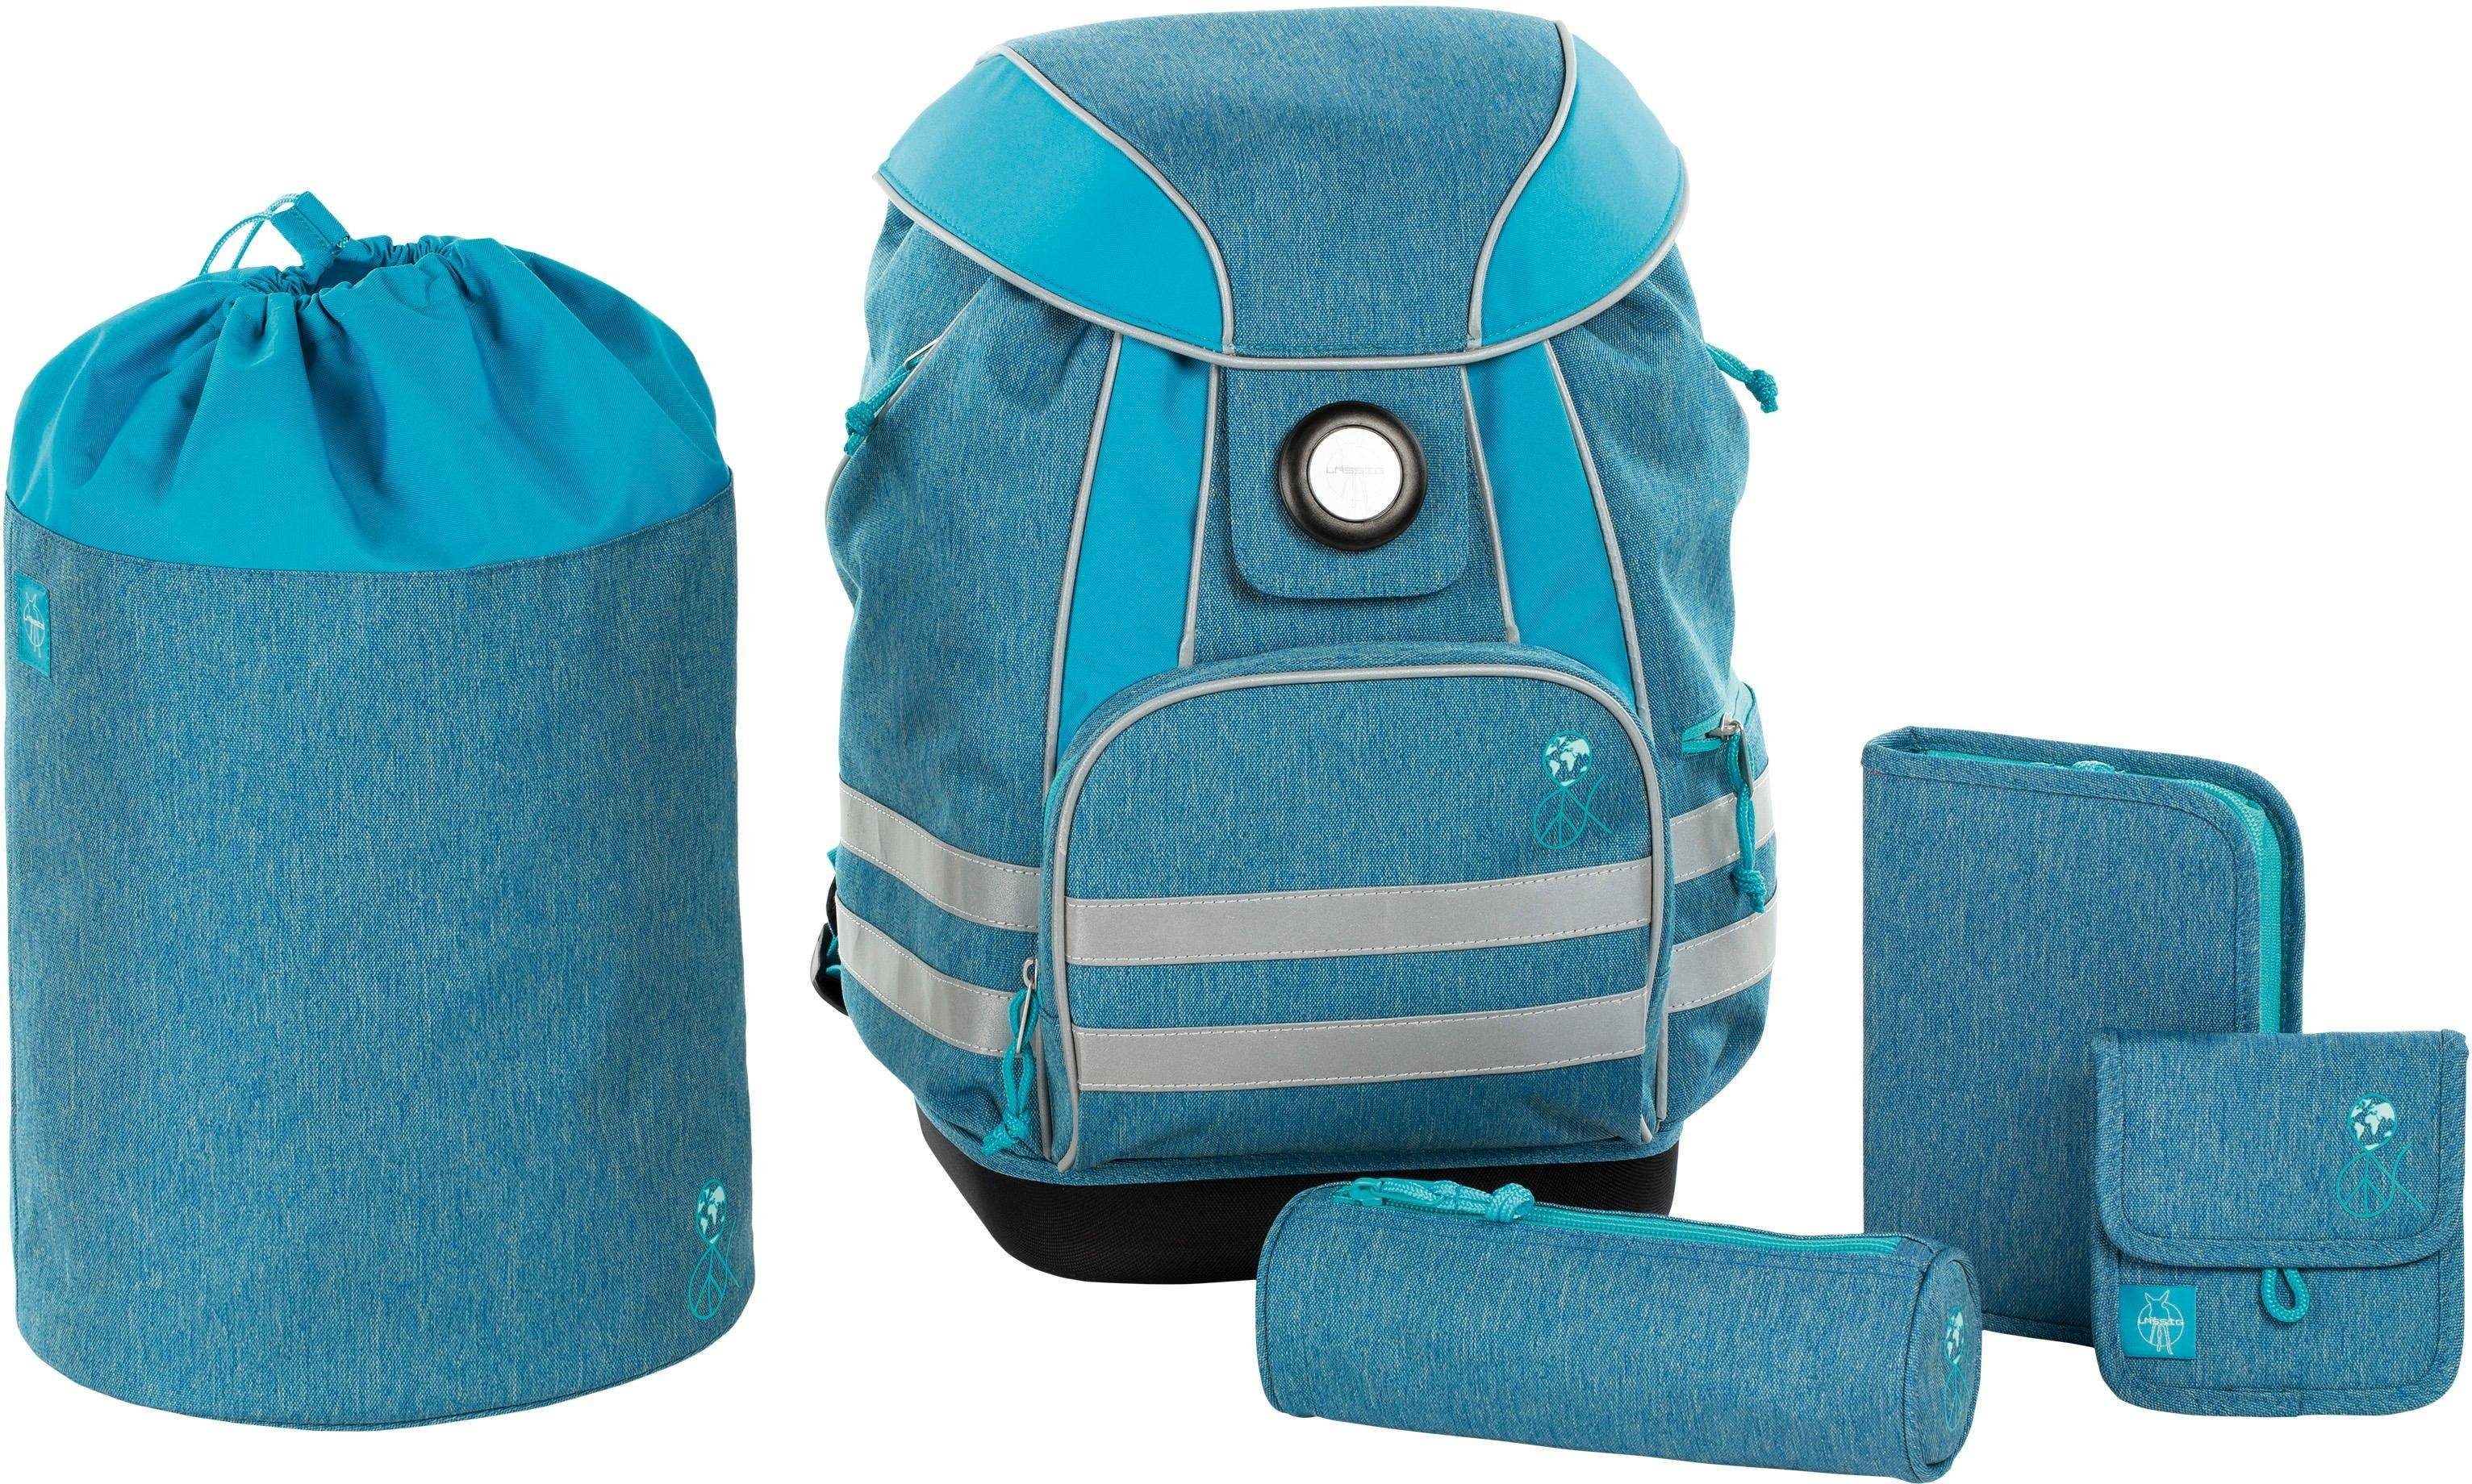 Lässig Schulrucksack Set, 5-tlg., »4Kids School Set, About Friends, Mélange Blue«, Mélange Blue